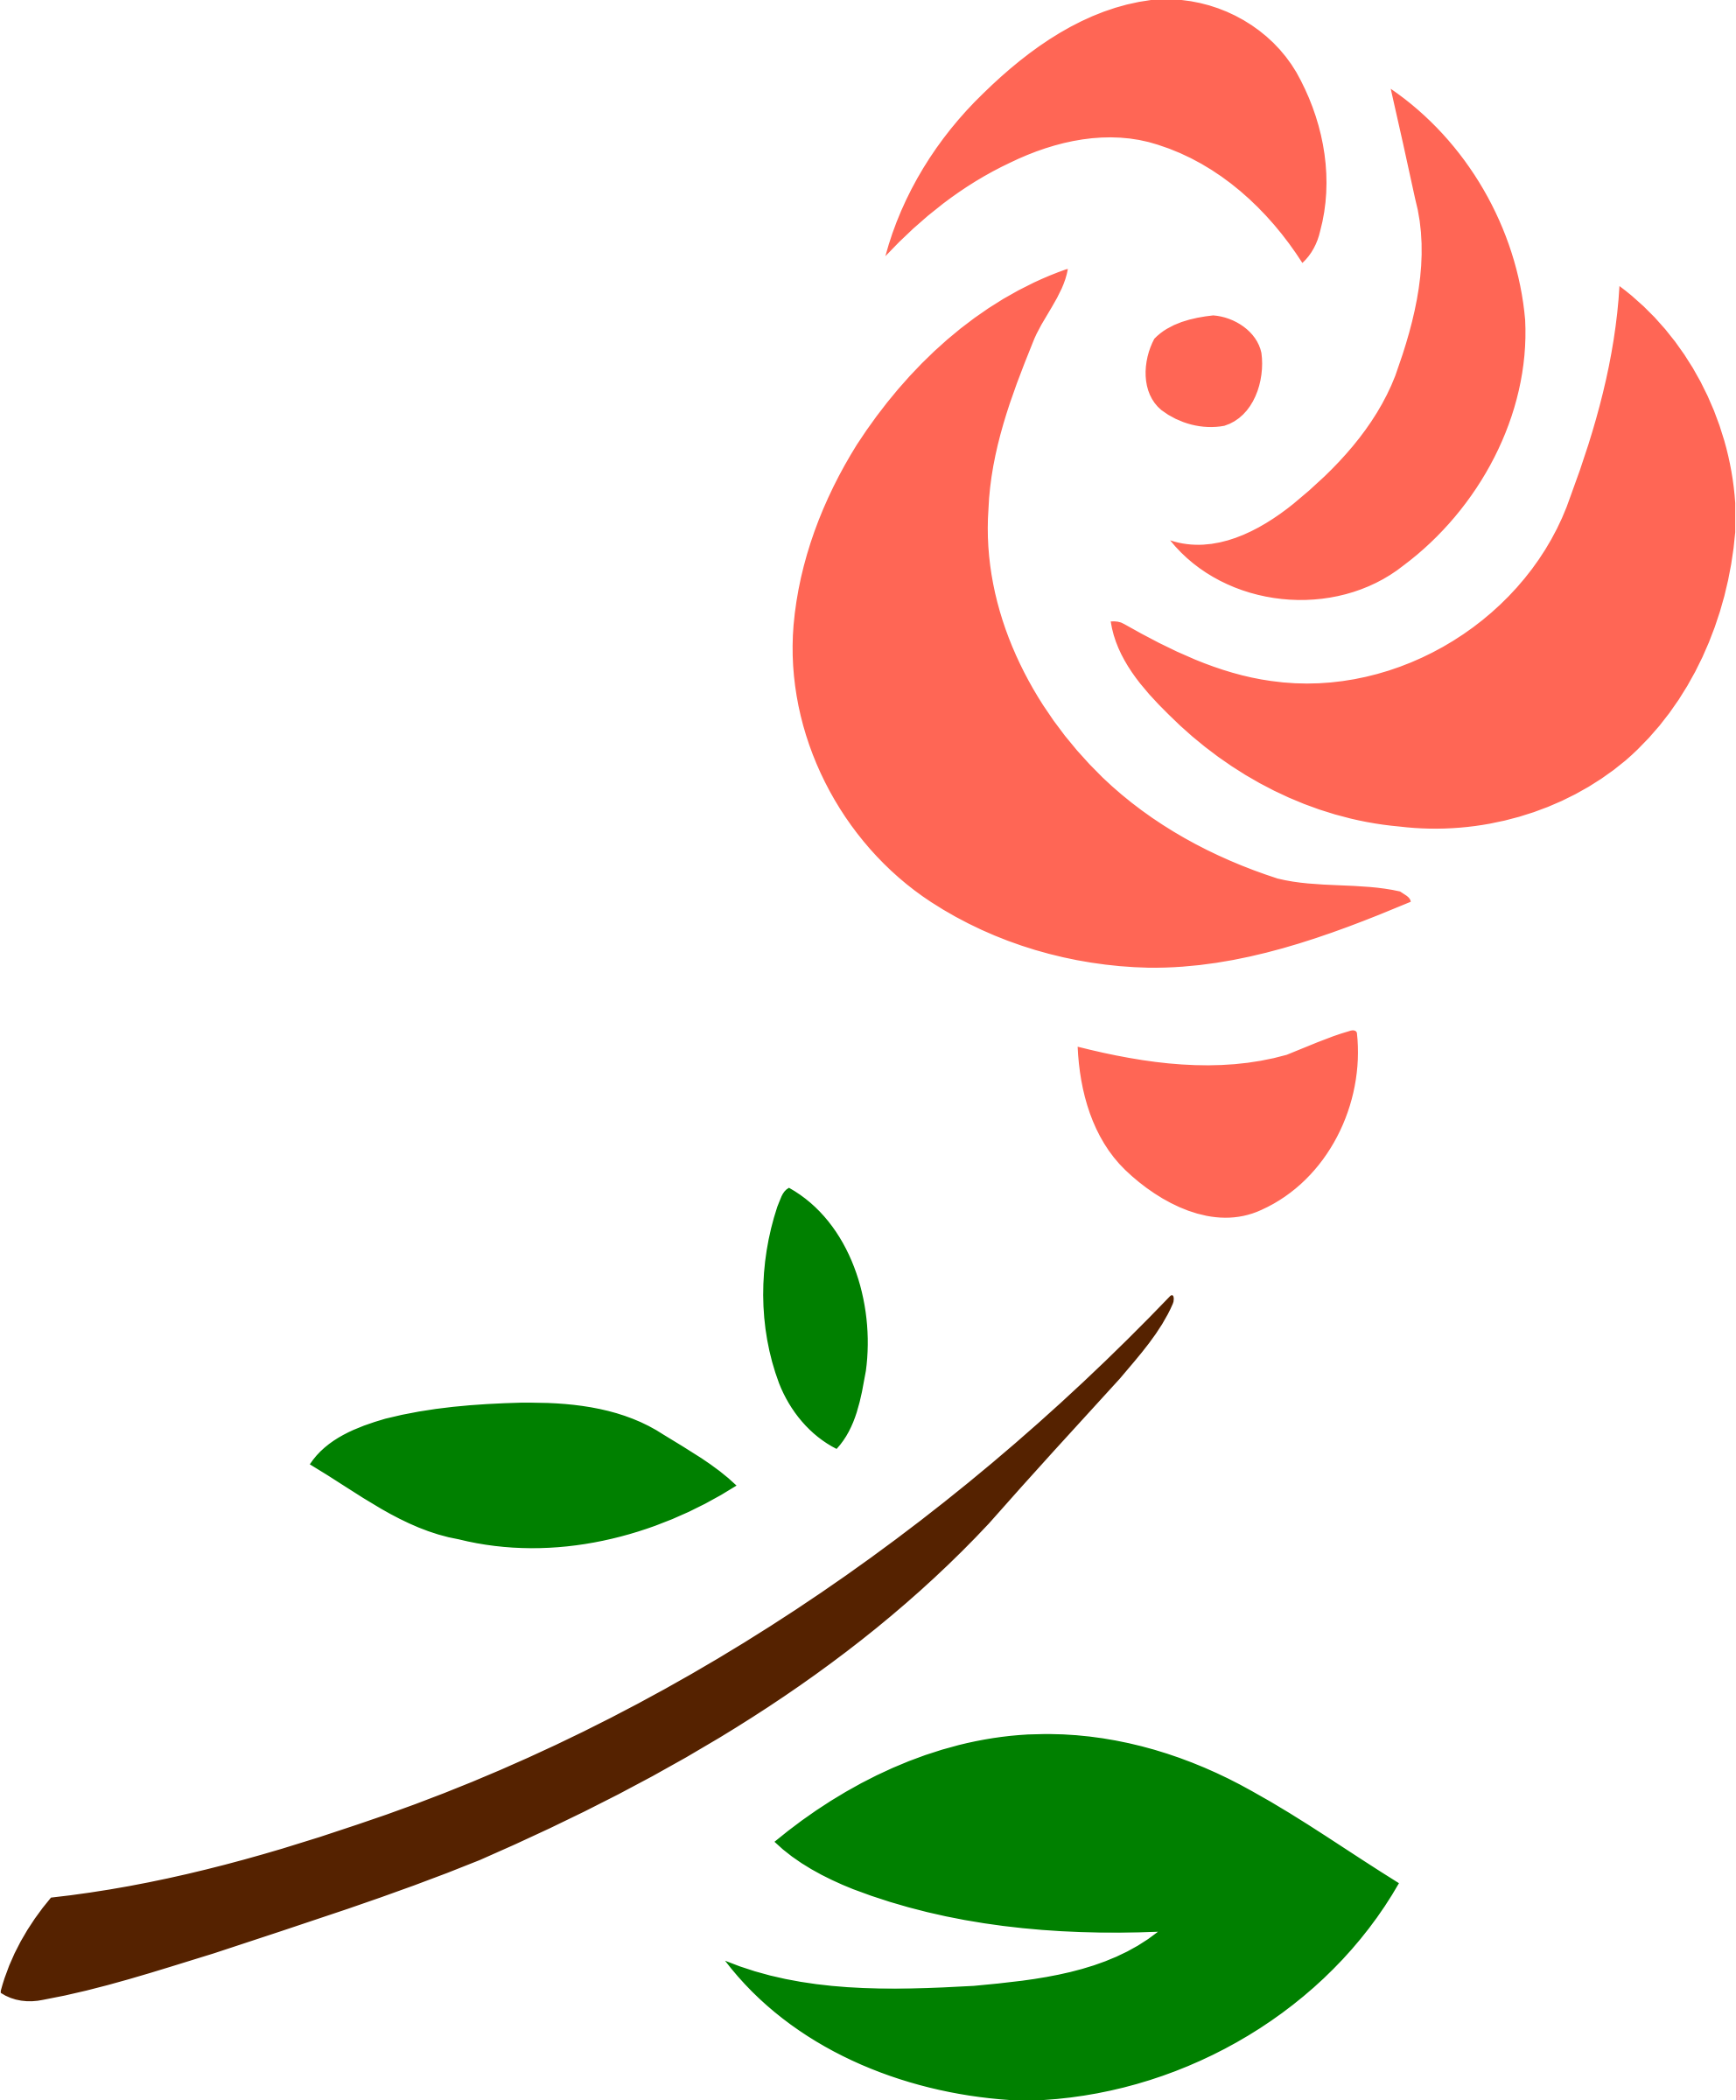 Stylised rose 2 (colour) by Firkin